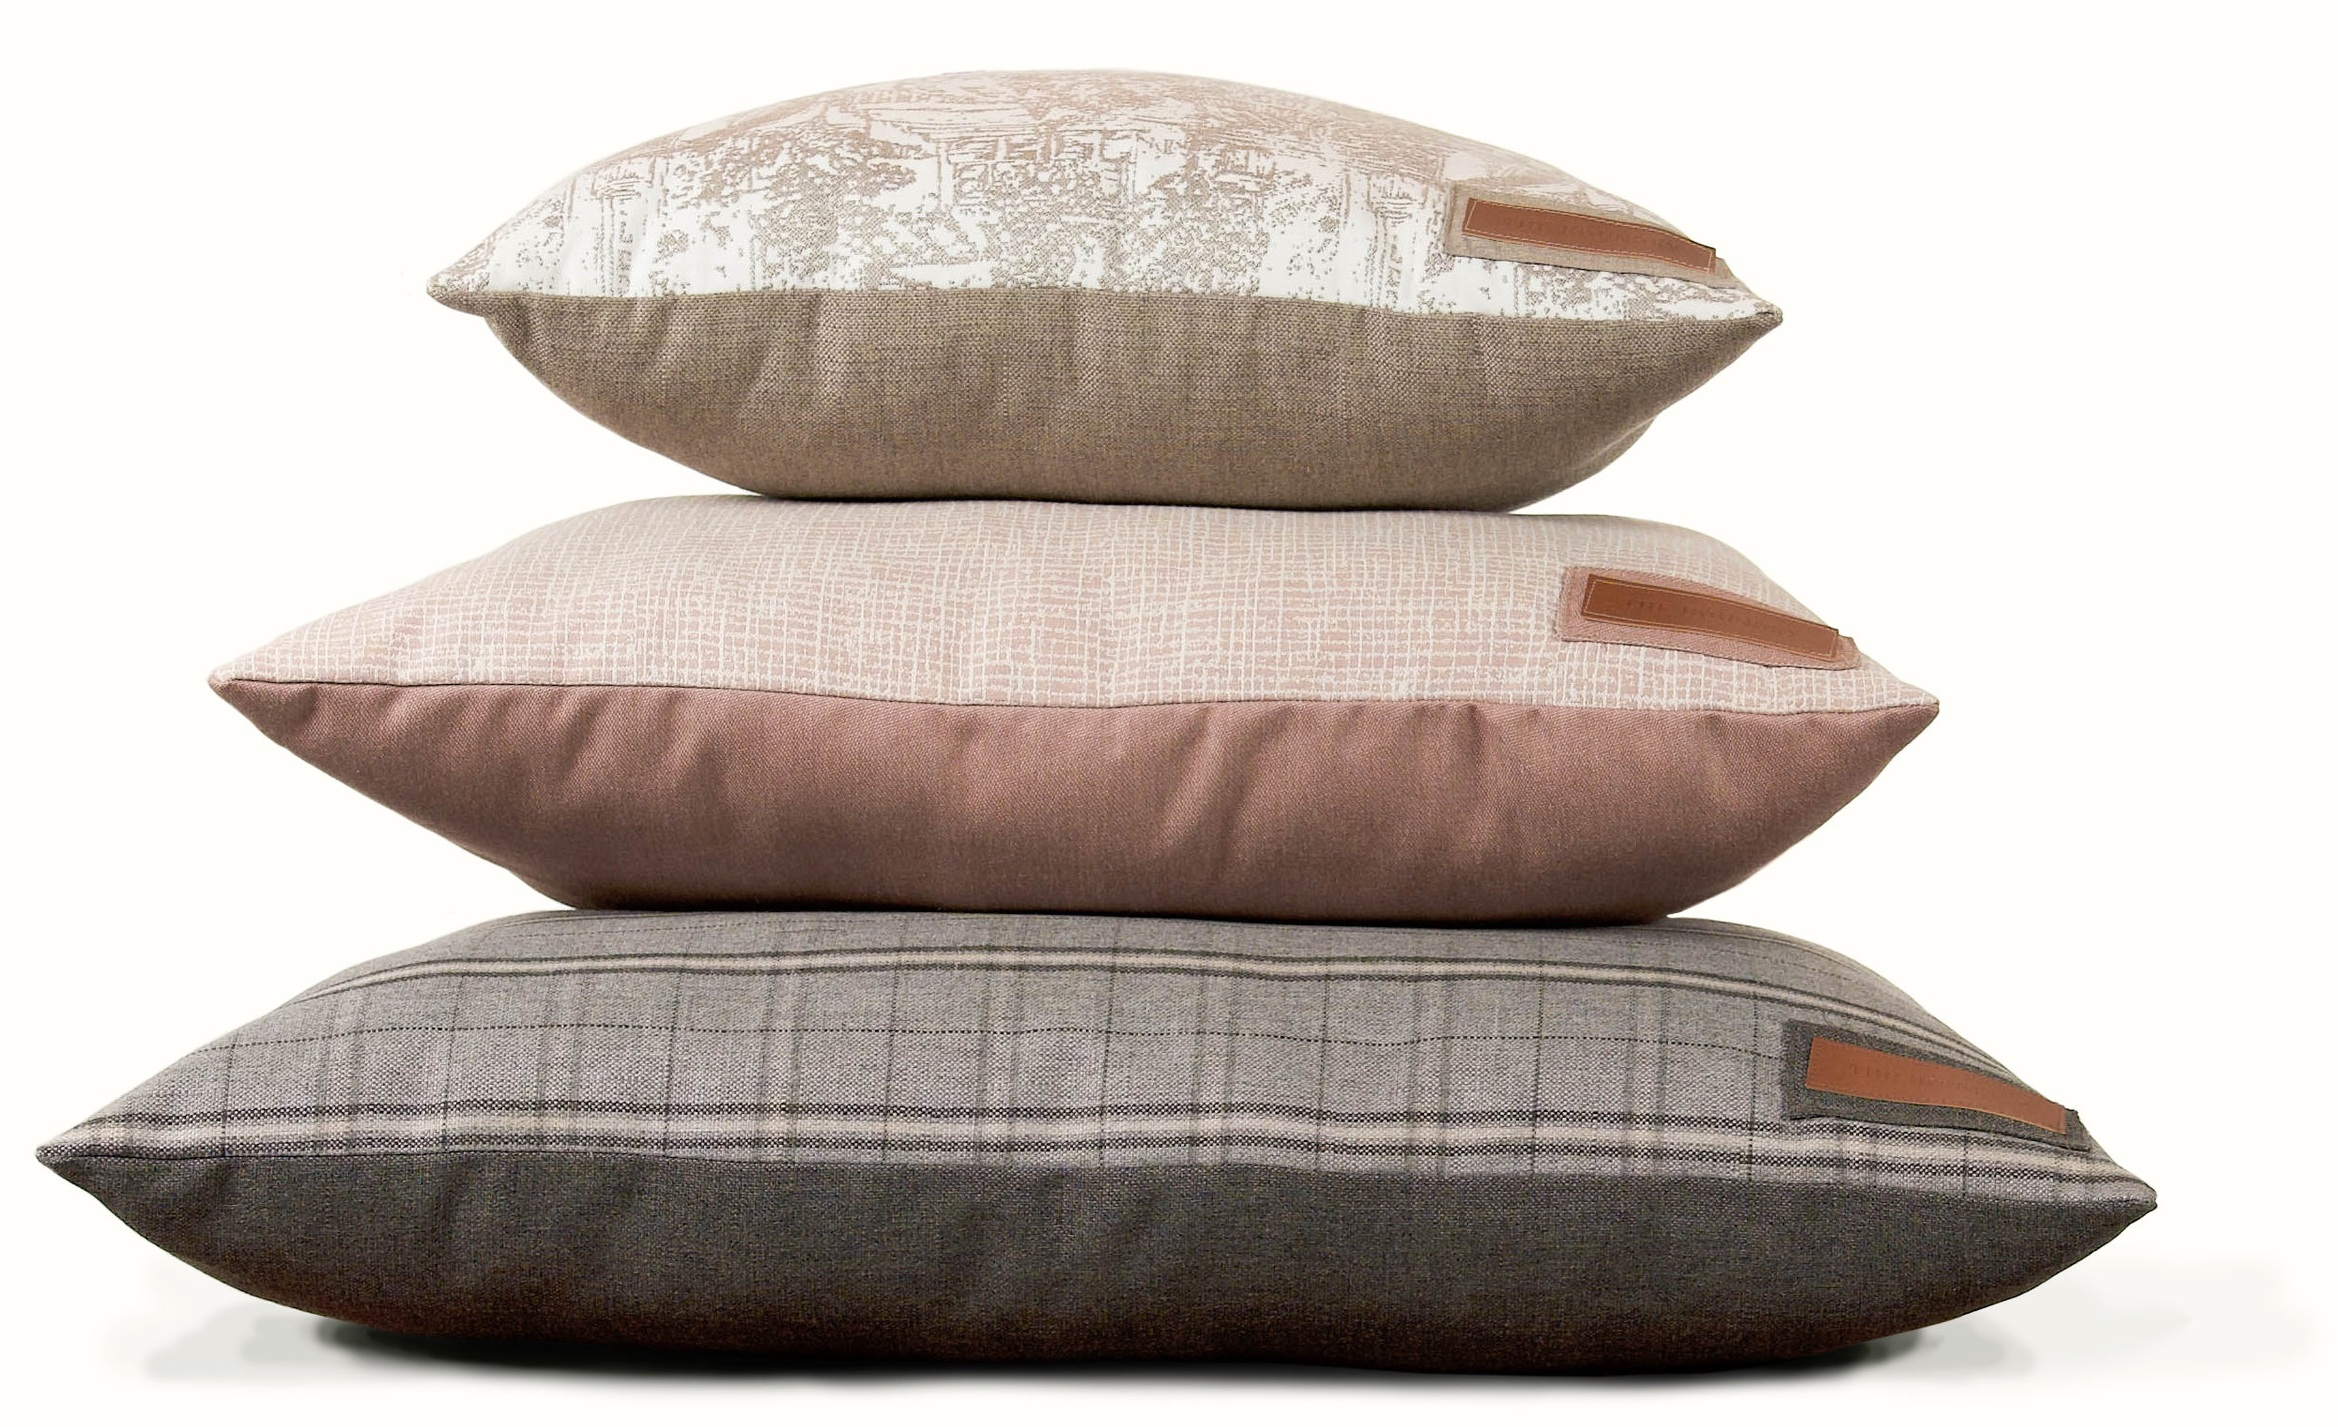 """Pillow Bed Sizes - SMALL BED: 25"""" x 25"""" x 8"""" LoftFor dogs smaller than 30 lbsMEDIUM BED: 38"""" x 29"""" x 10"""" LoftFor dogs 30-60 lbsLARGE BED: 47"""" x 37"""" x 10"""" loftFor dogs 60-90 lbs"""